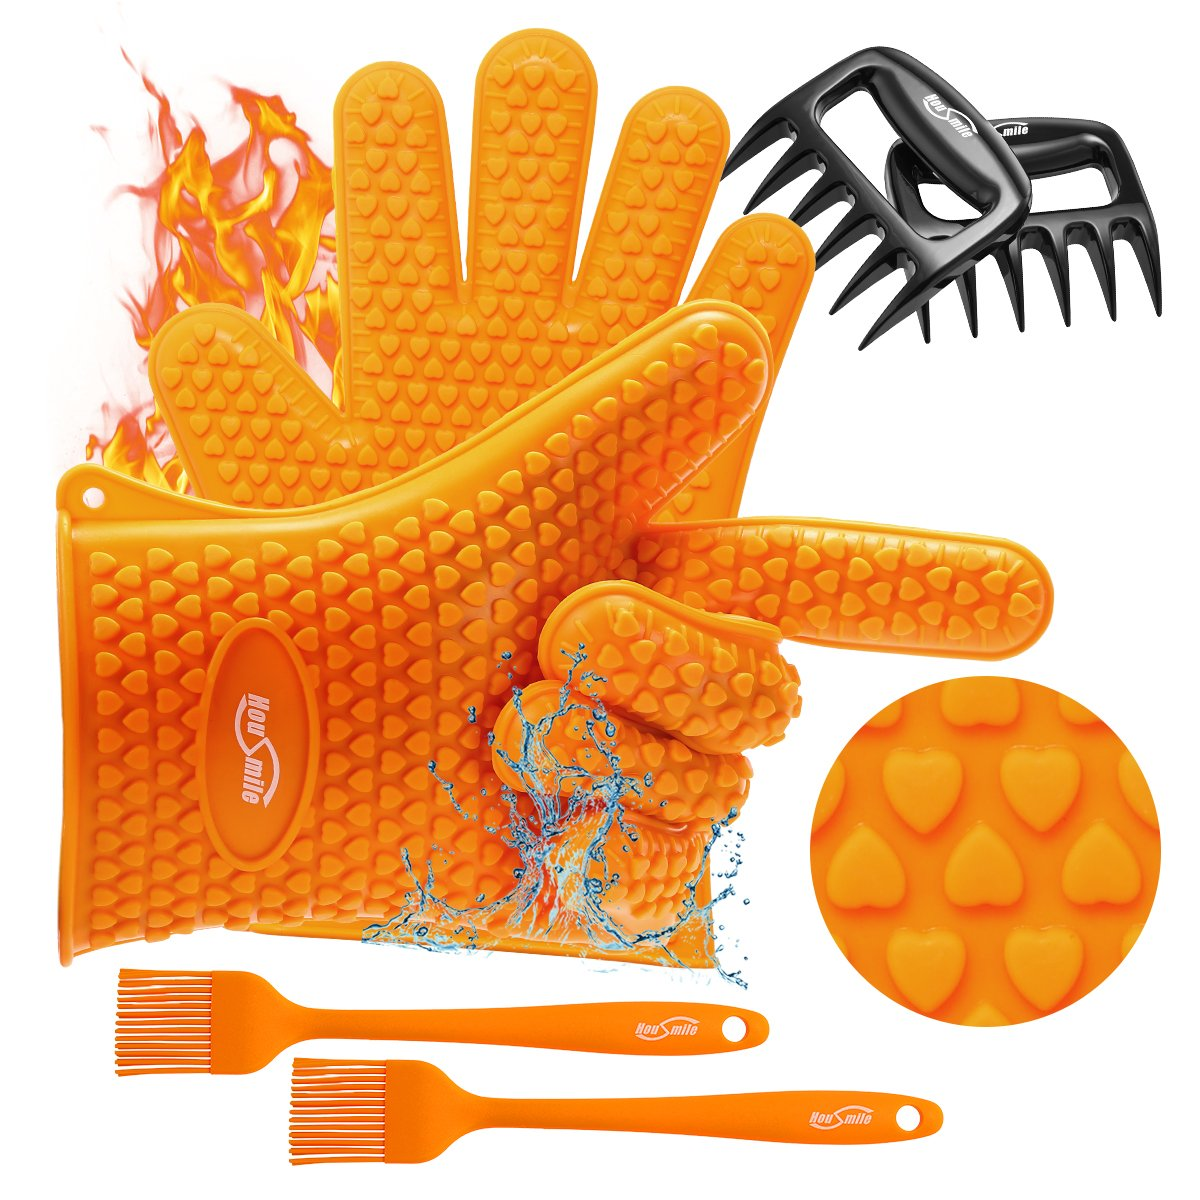 Housmile Grilling Silicone Gloves, Meat Claws & Non-Slip Basting Brush, Heat Resistant Barbecue Gloves BBQ Cooking Tool for Grilling, Baking and Barbecue - 3Pcs